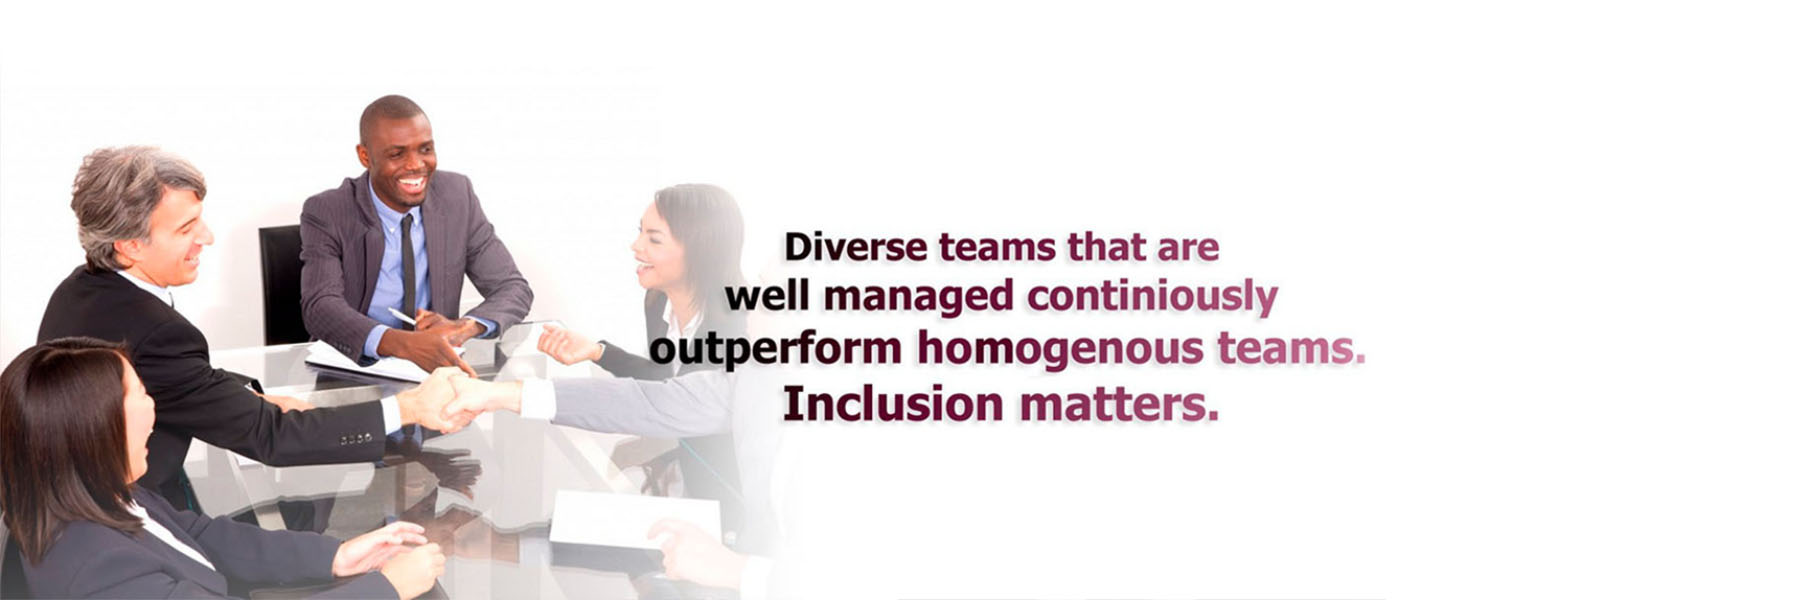 slide-3-3×1-executive-diversity-training-slider-images